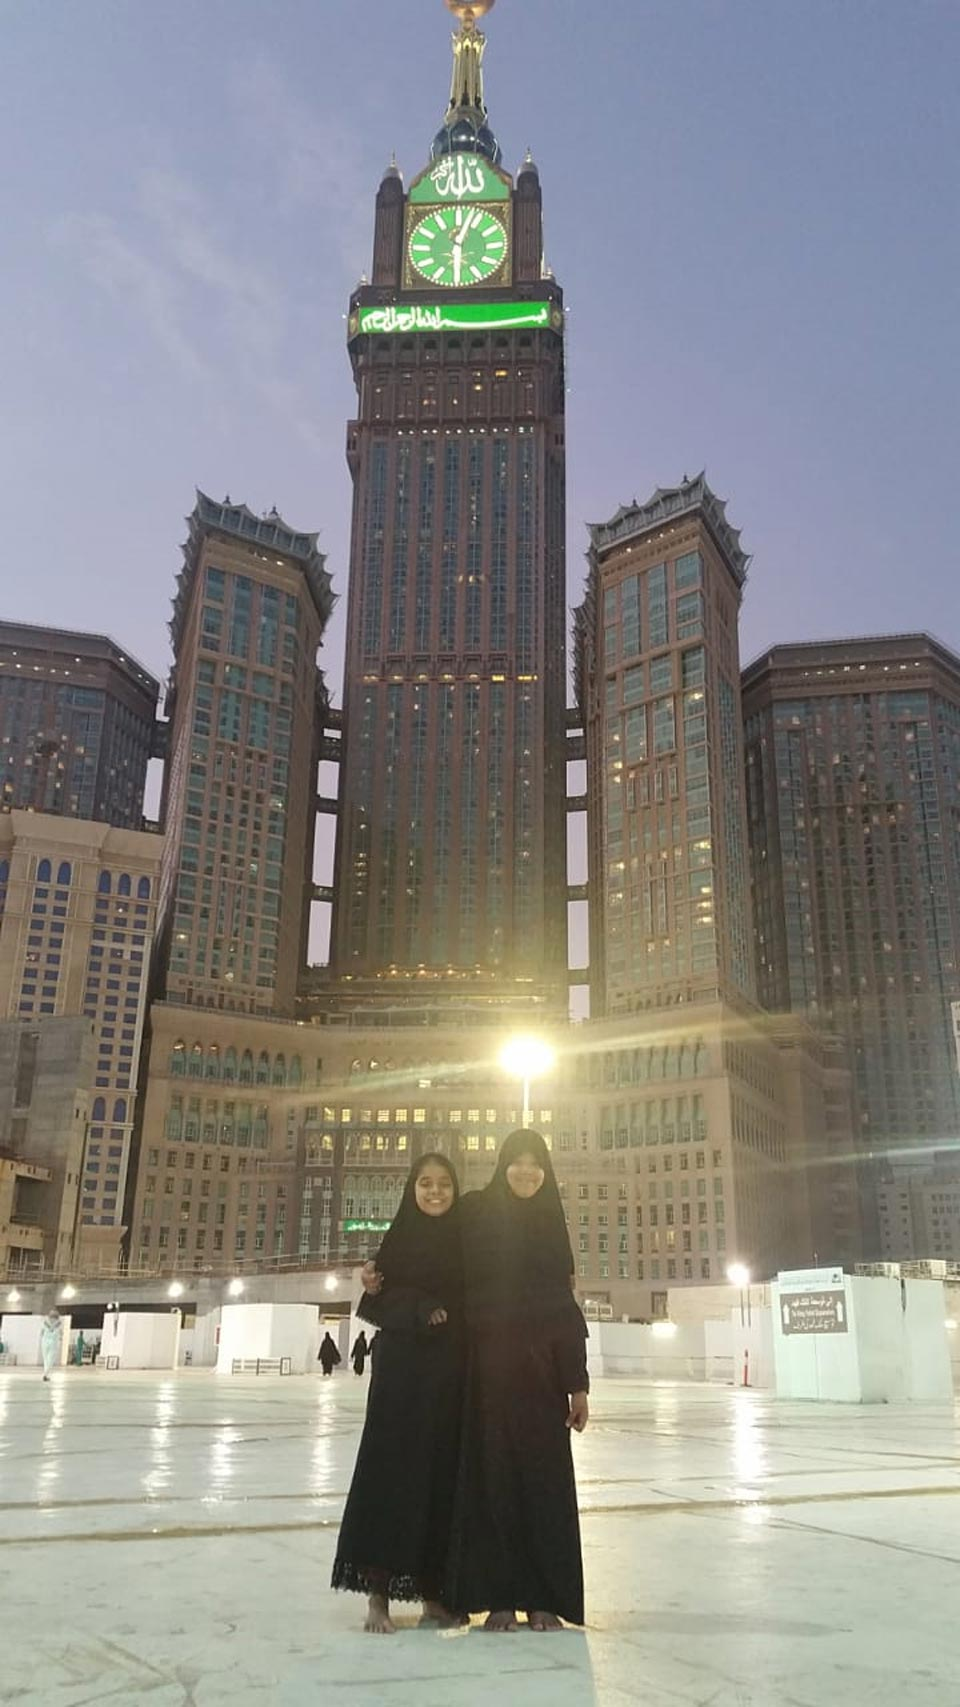 Zoya and Zara in front of the Clock Tower Makkah